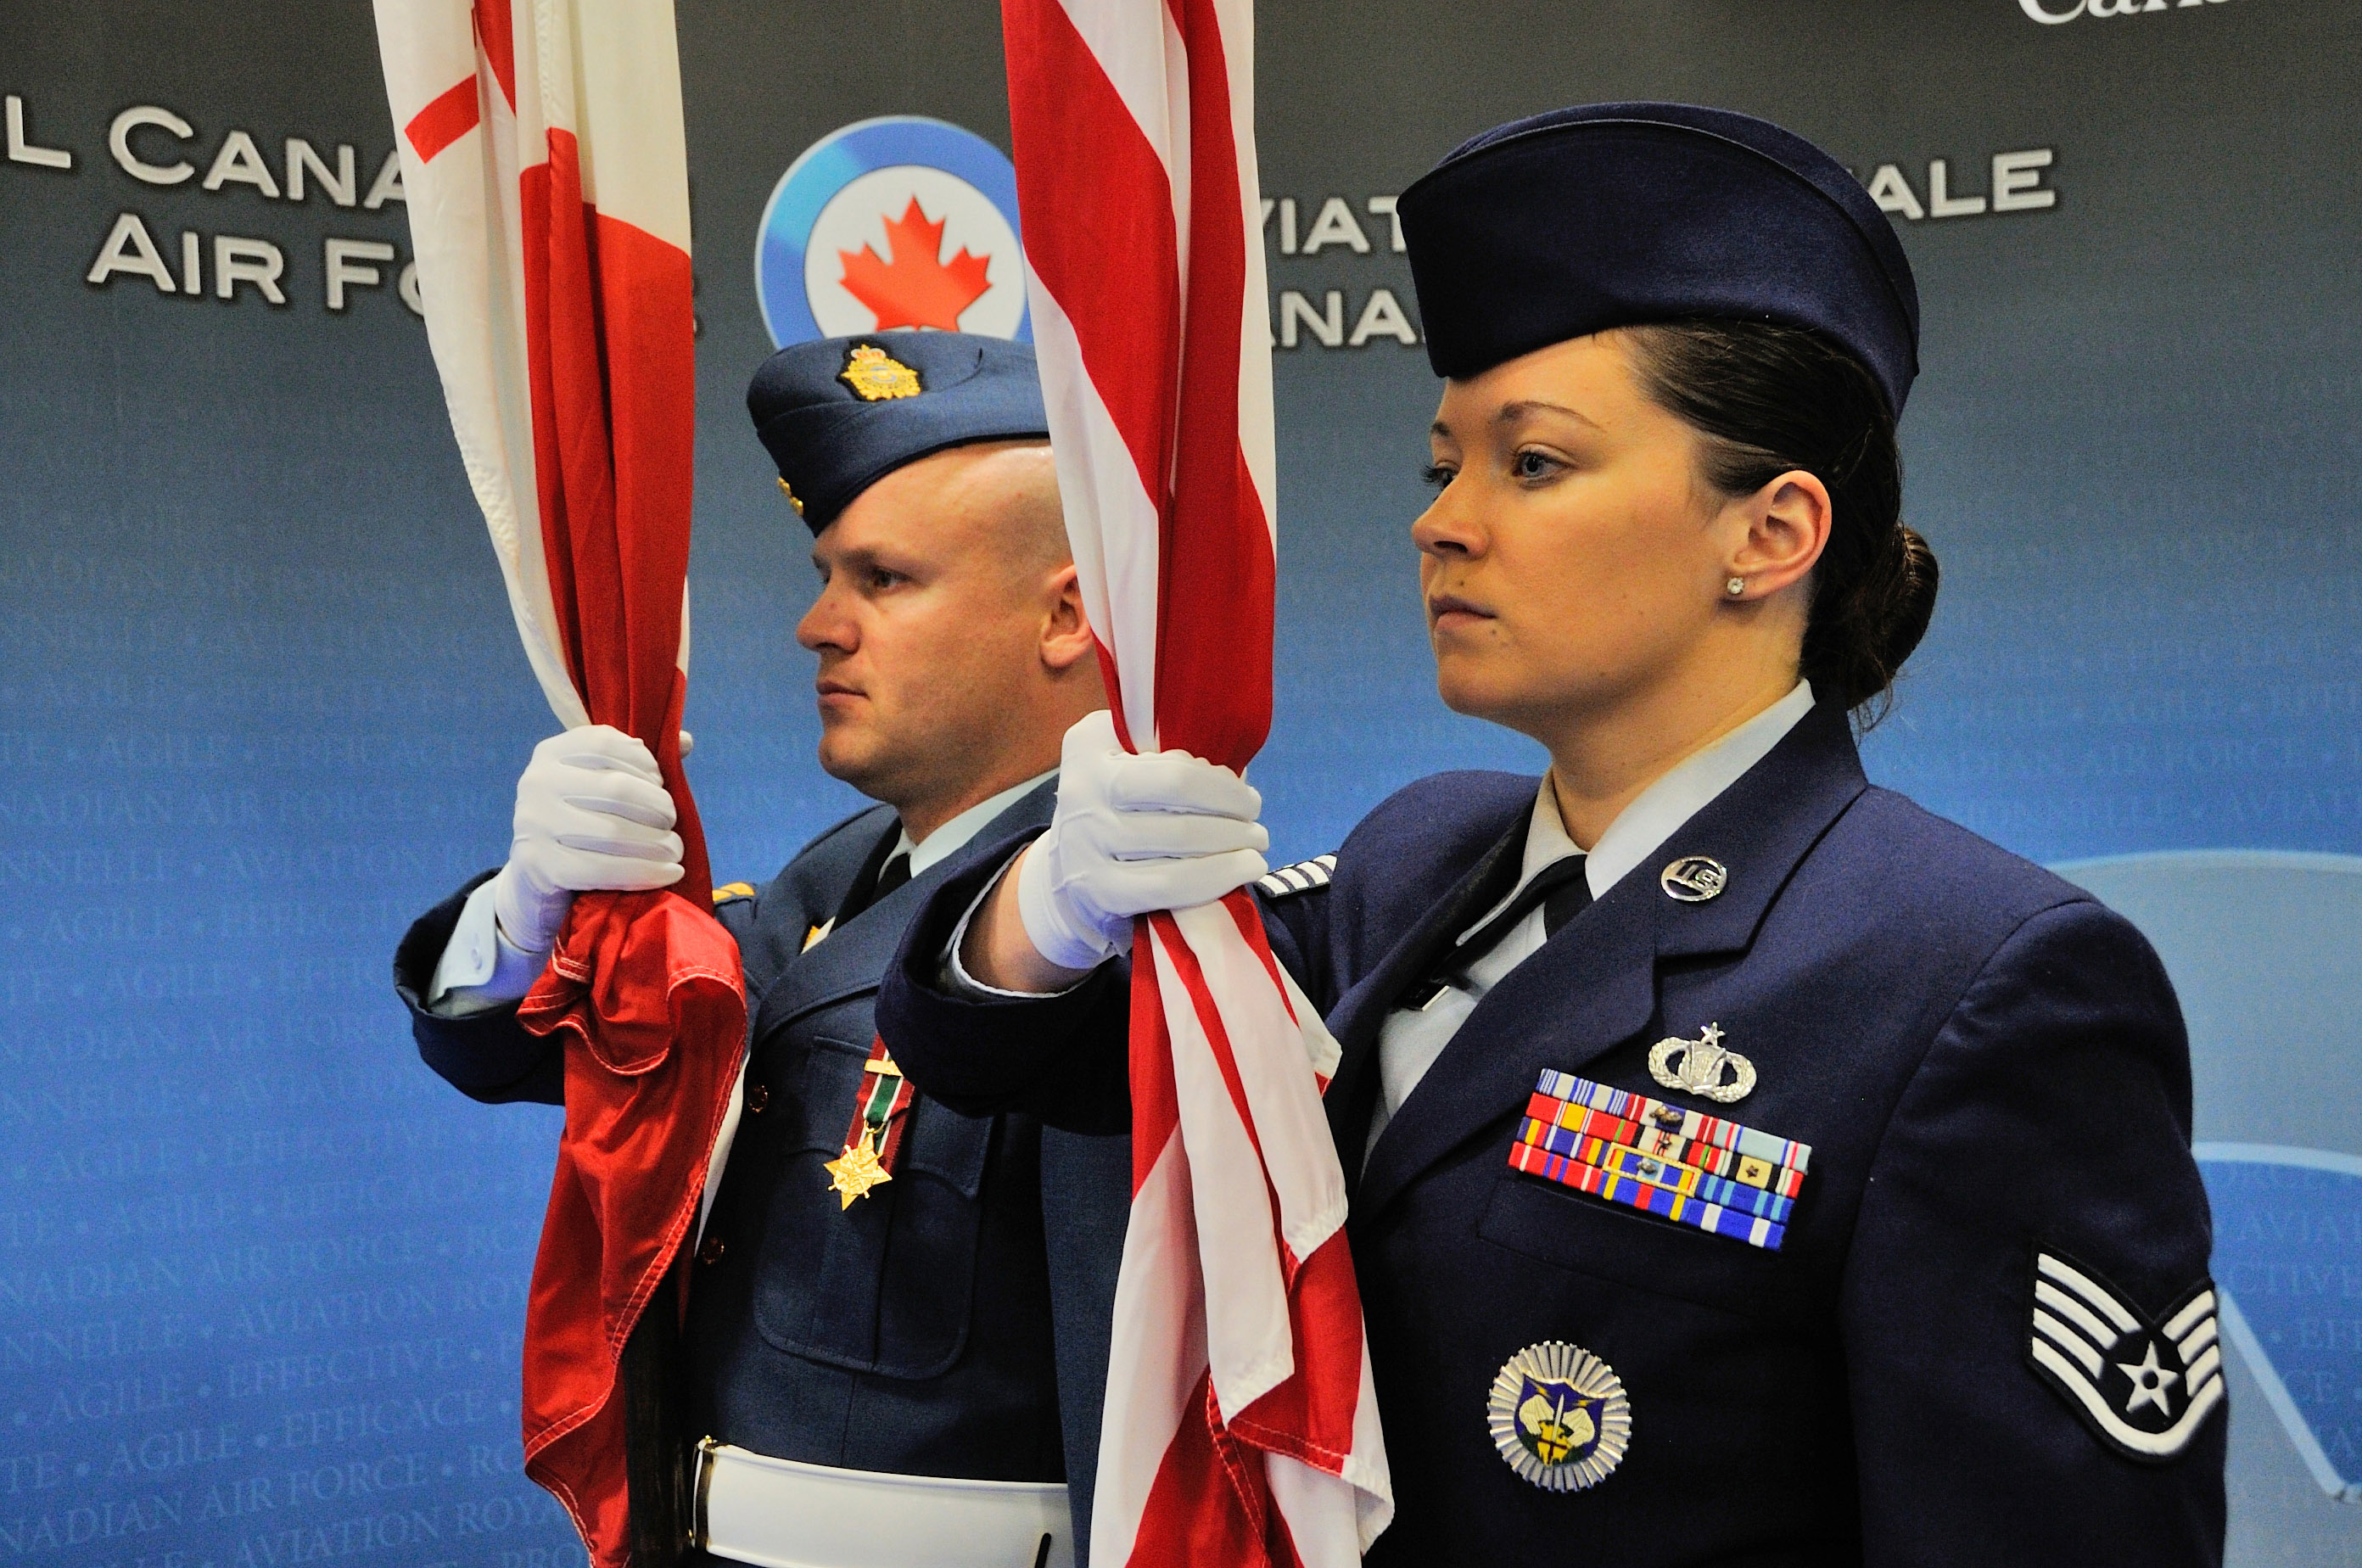 Corporal Christian Eadie (left), Royal Canadian Air Force, and Staff Sergeant Katherine Wilhelm, United States Air Force, act as flag bearers during the National Day of Honour ceremony held in North Bay, Ontario, on May 9, 2014. Both work under the auspices of NORAD.